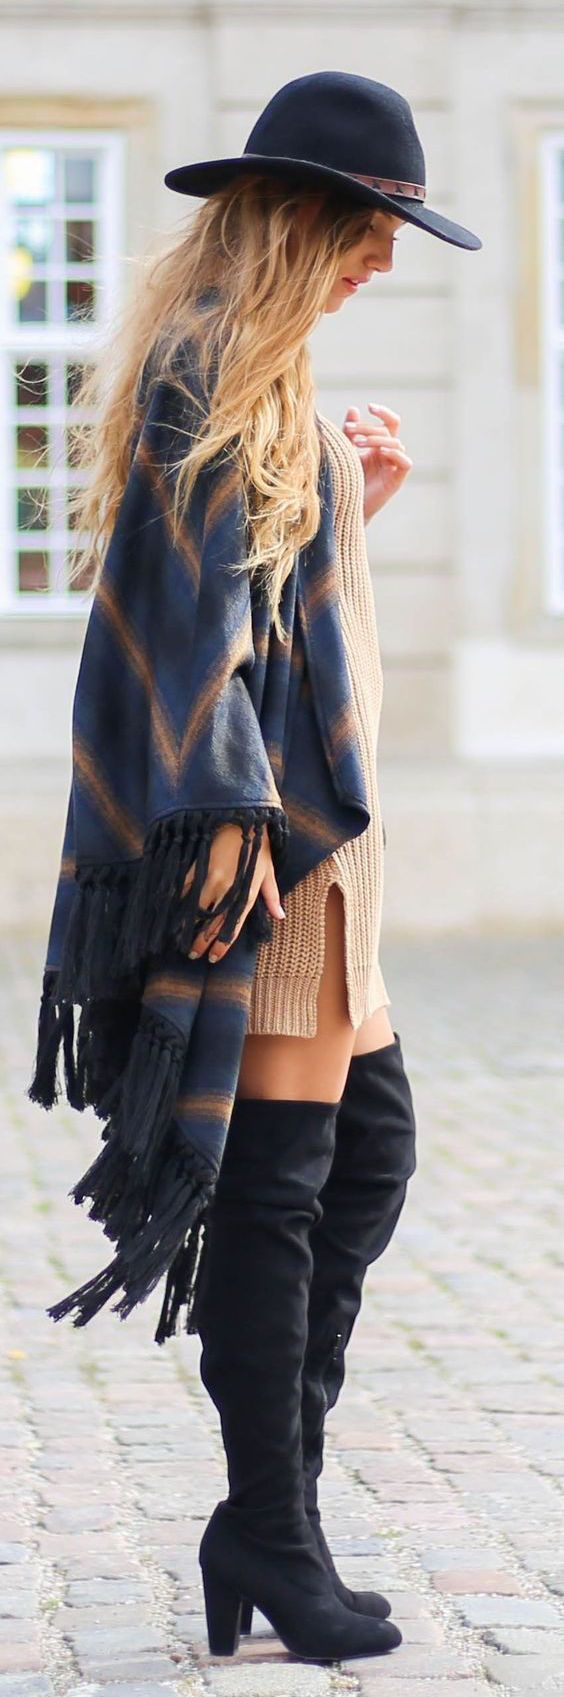 fall fashion boho